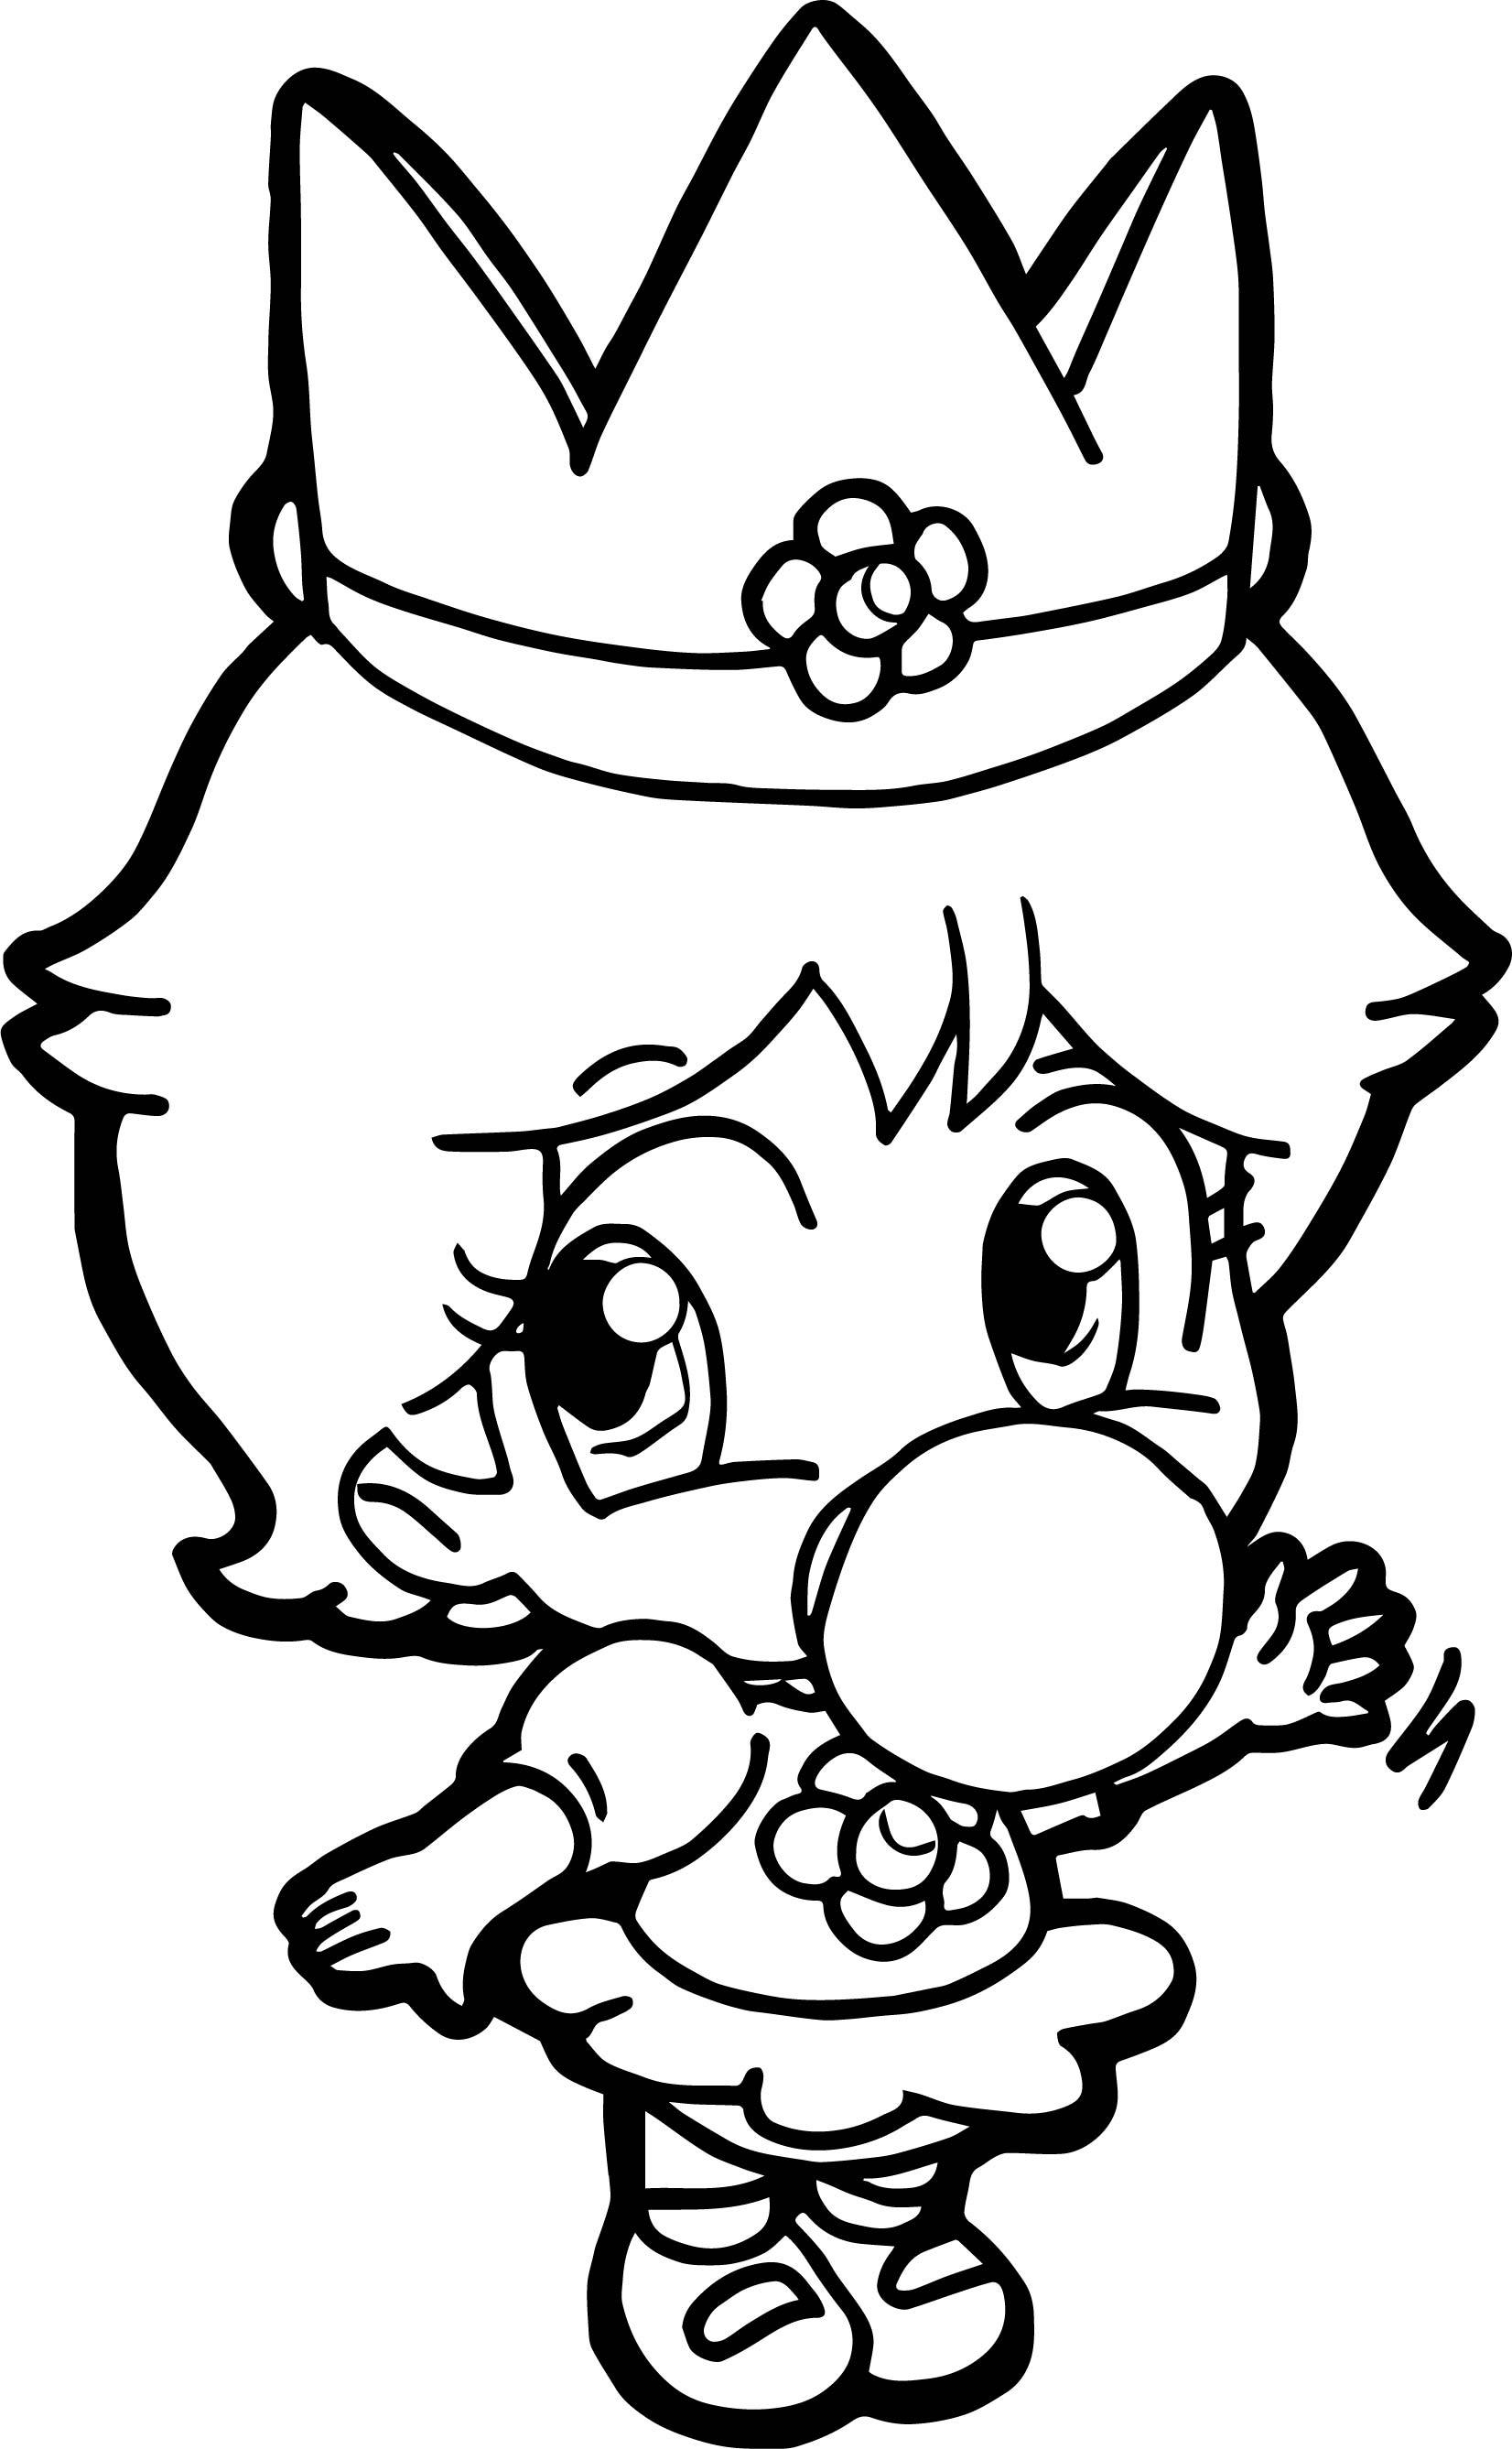 1652x2675 Amazing Excellent Daisy Flower Coloring Pages With For Styles